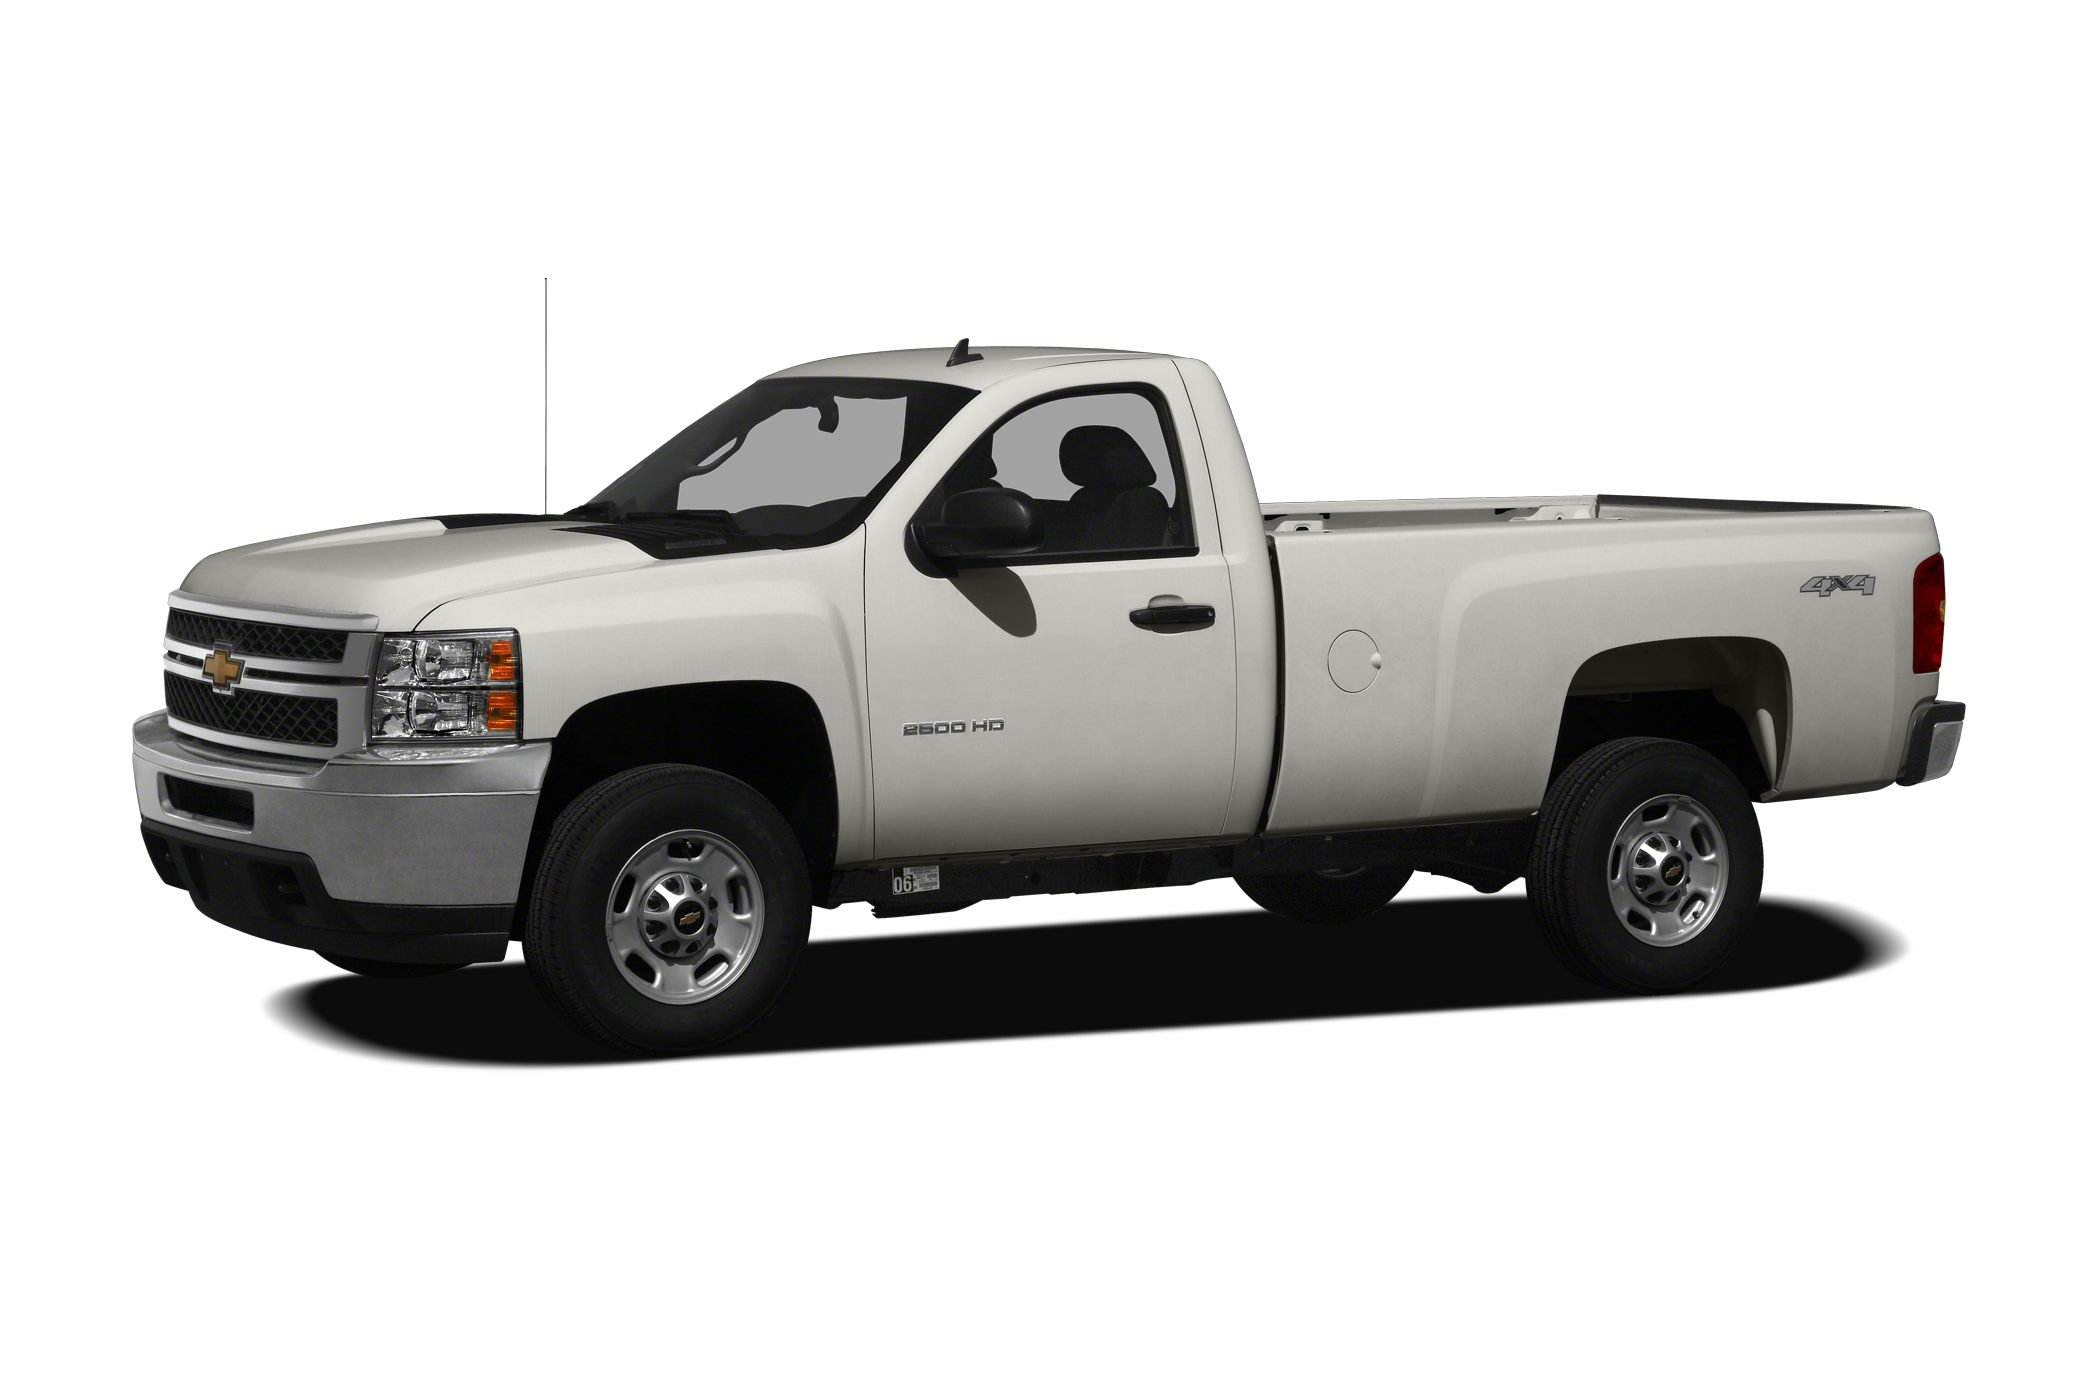 2012 Chevrolet Silverado 2500 Work Truck Regular Cab Pickup for sale in Houston for $21,991 with 94,331 miles